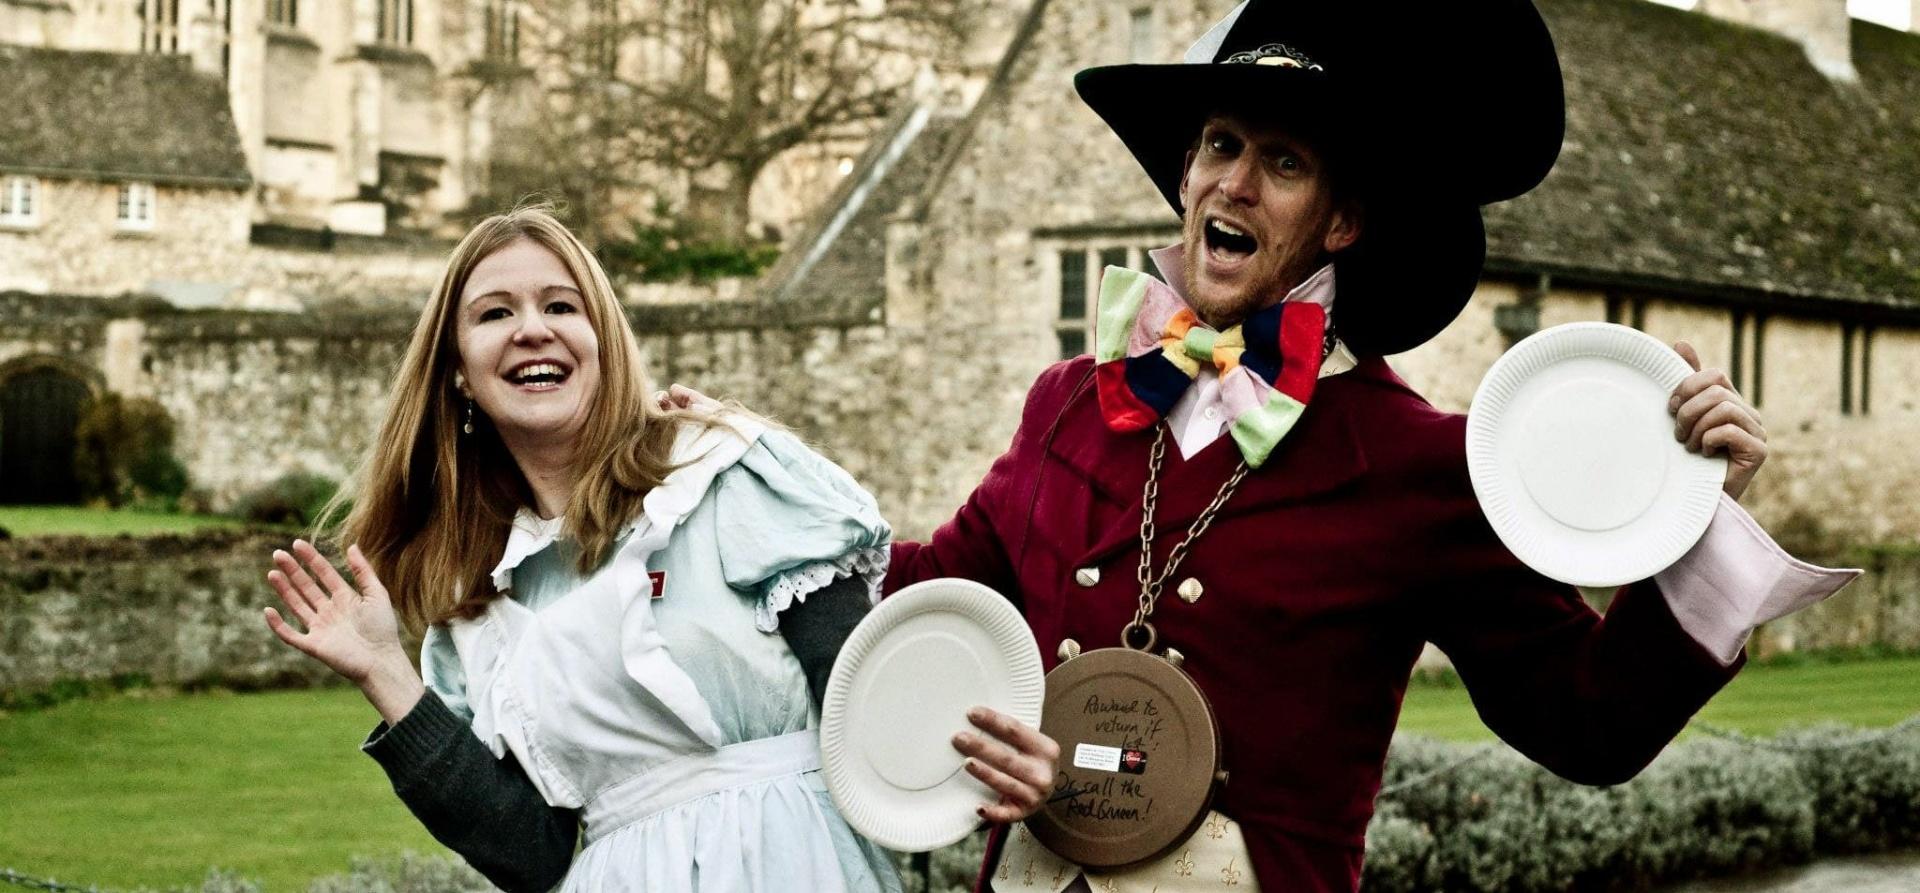 Mad Hatter Walking Tour Of Oxford - For 2